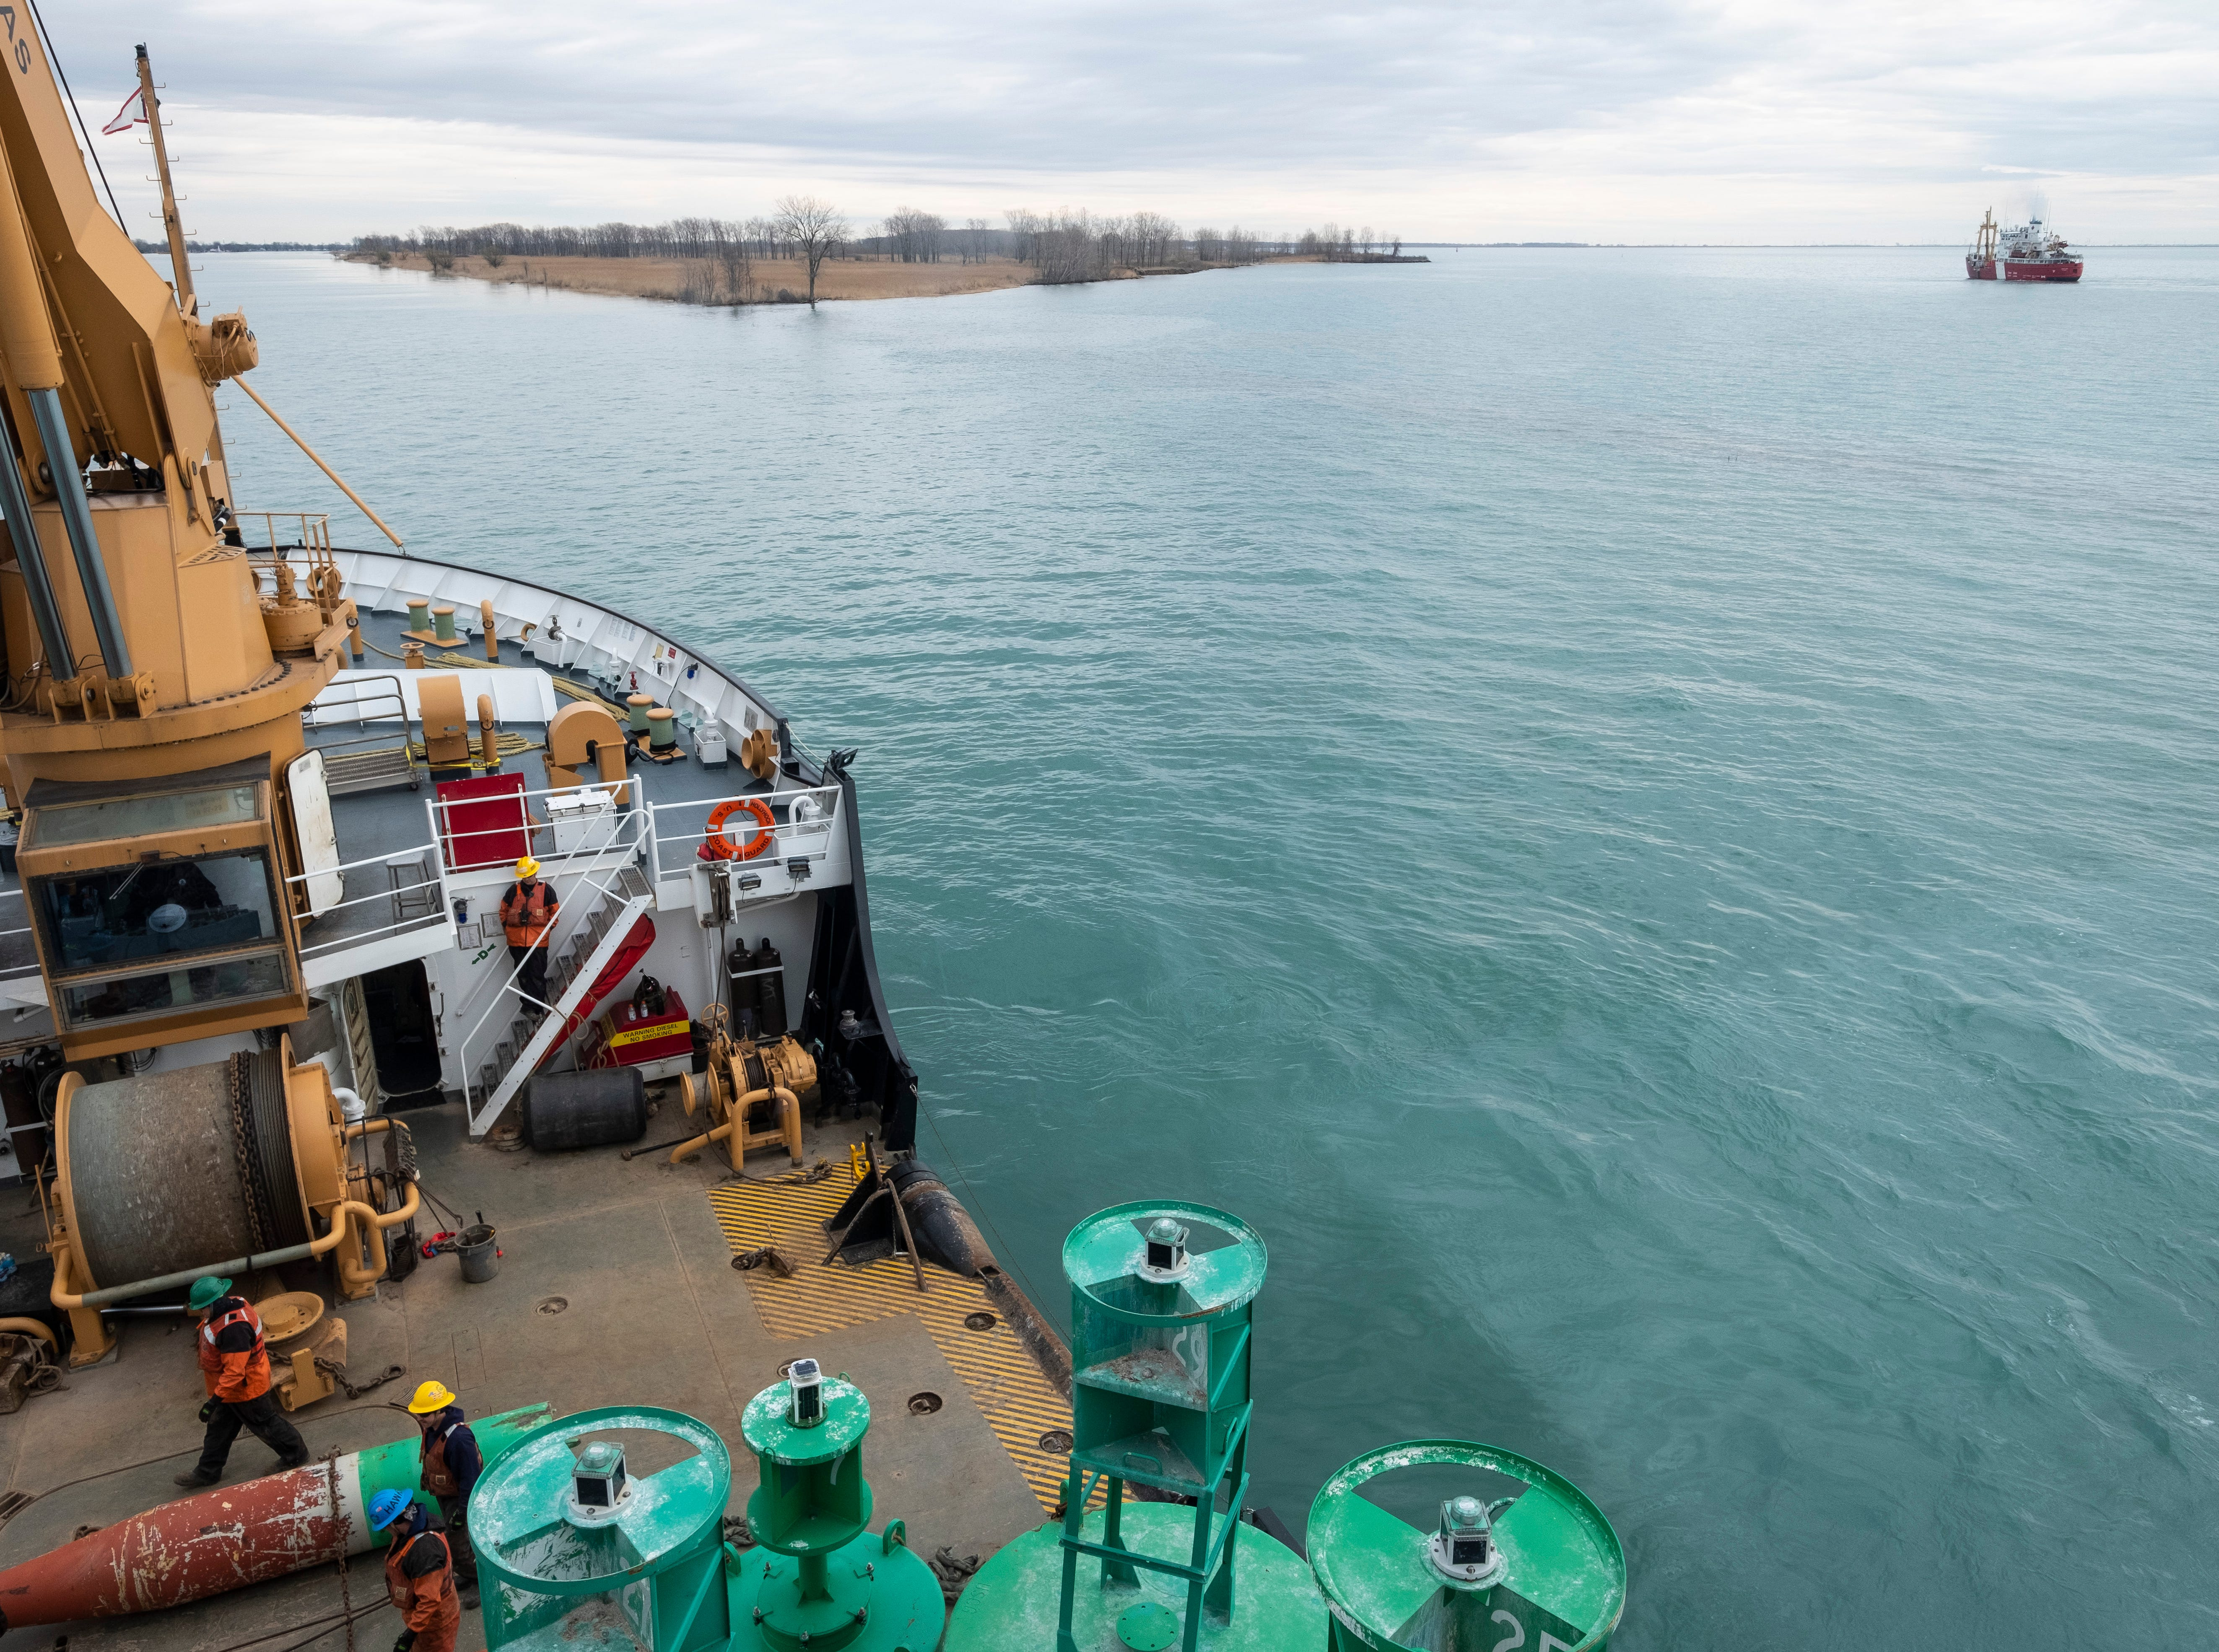 While the USCGC Hollyhock's crew works to remove a buoy from the St. Clair River, Canadian Coast Guard Ship Griffon and its crew work one of their buoys nearby.